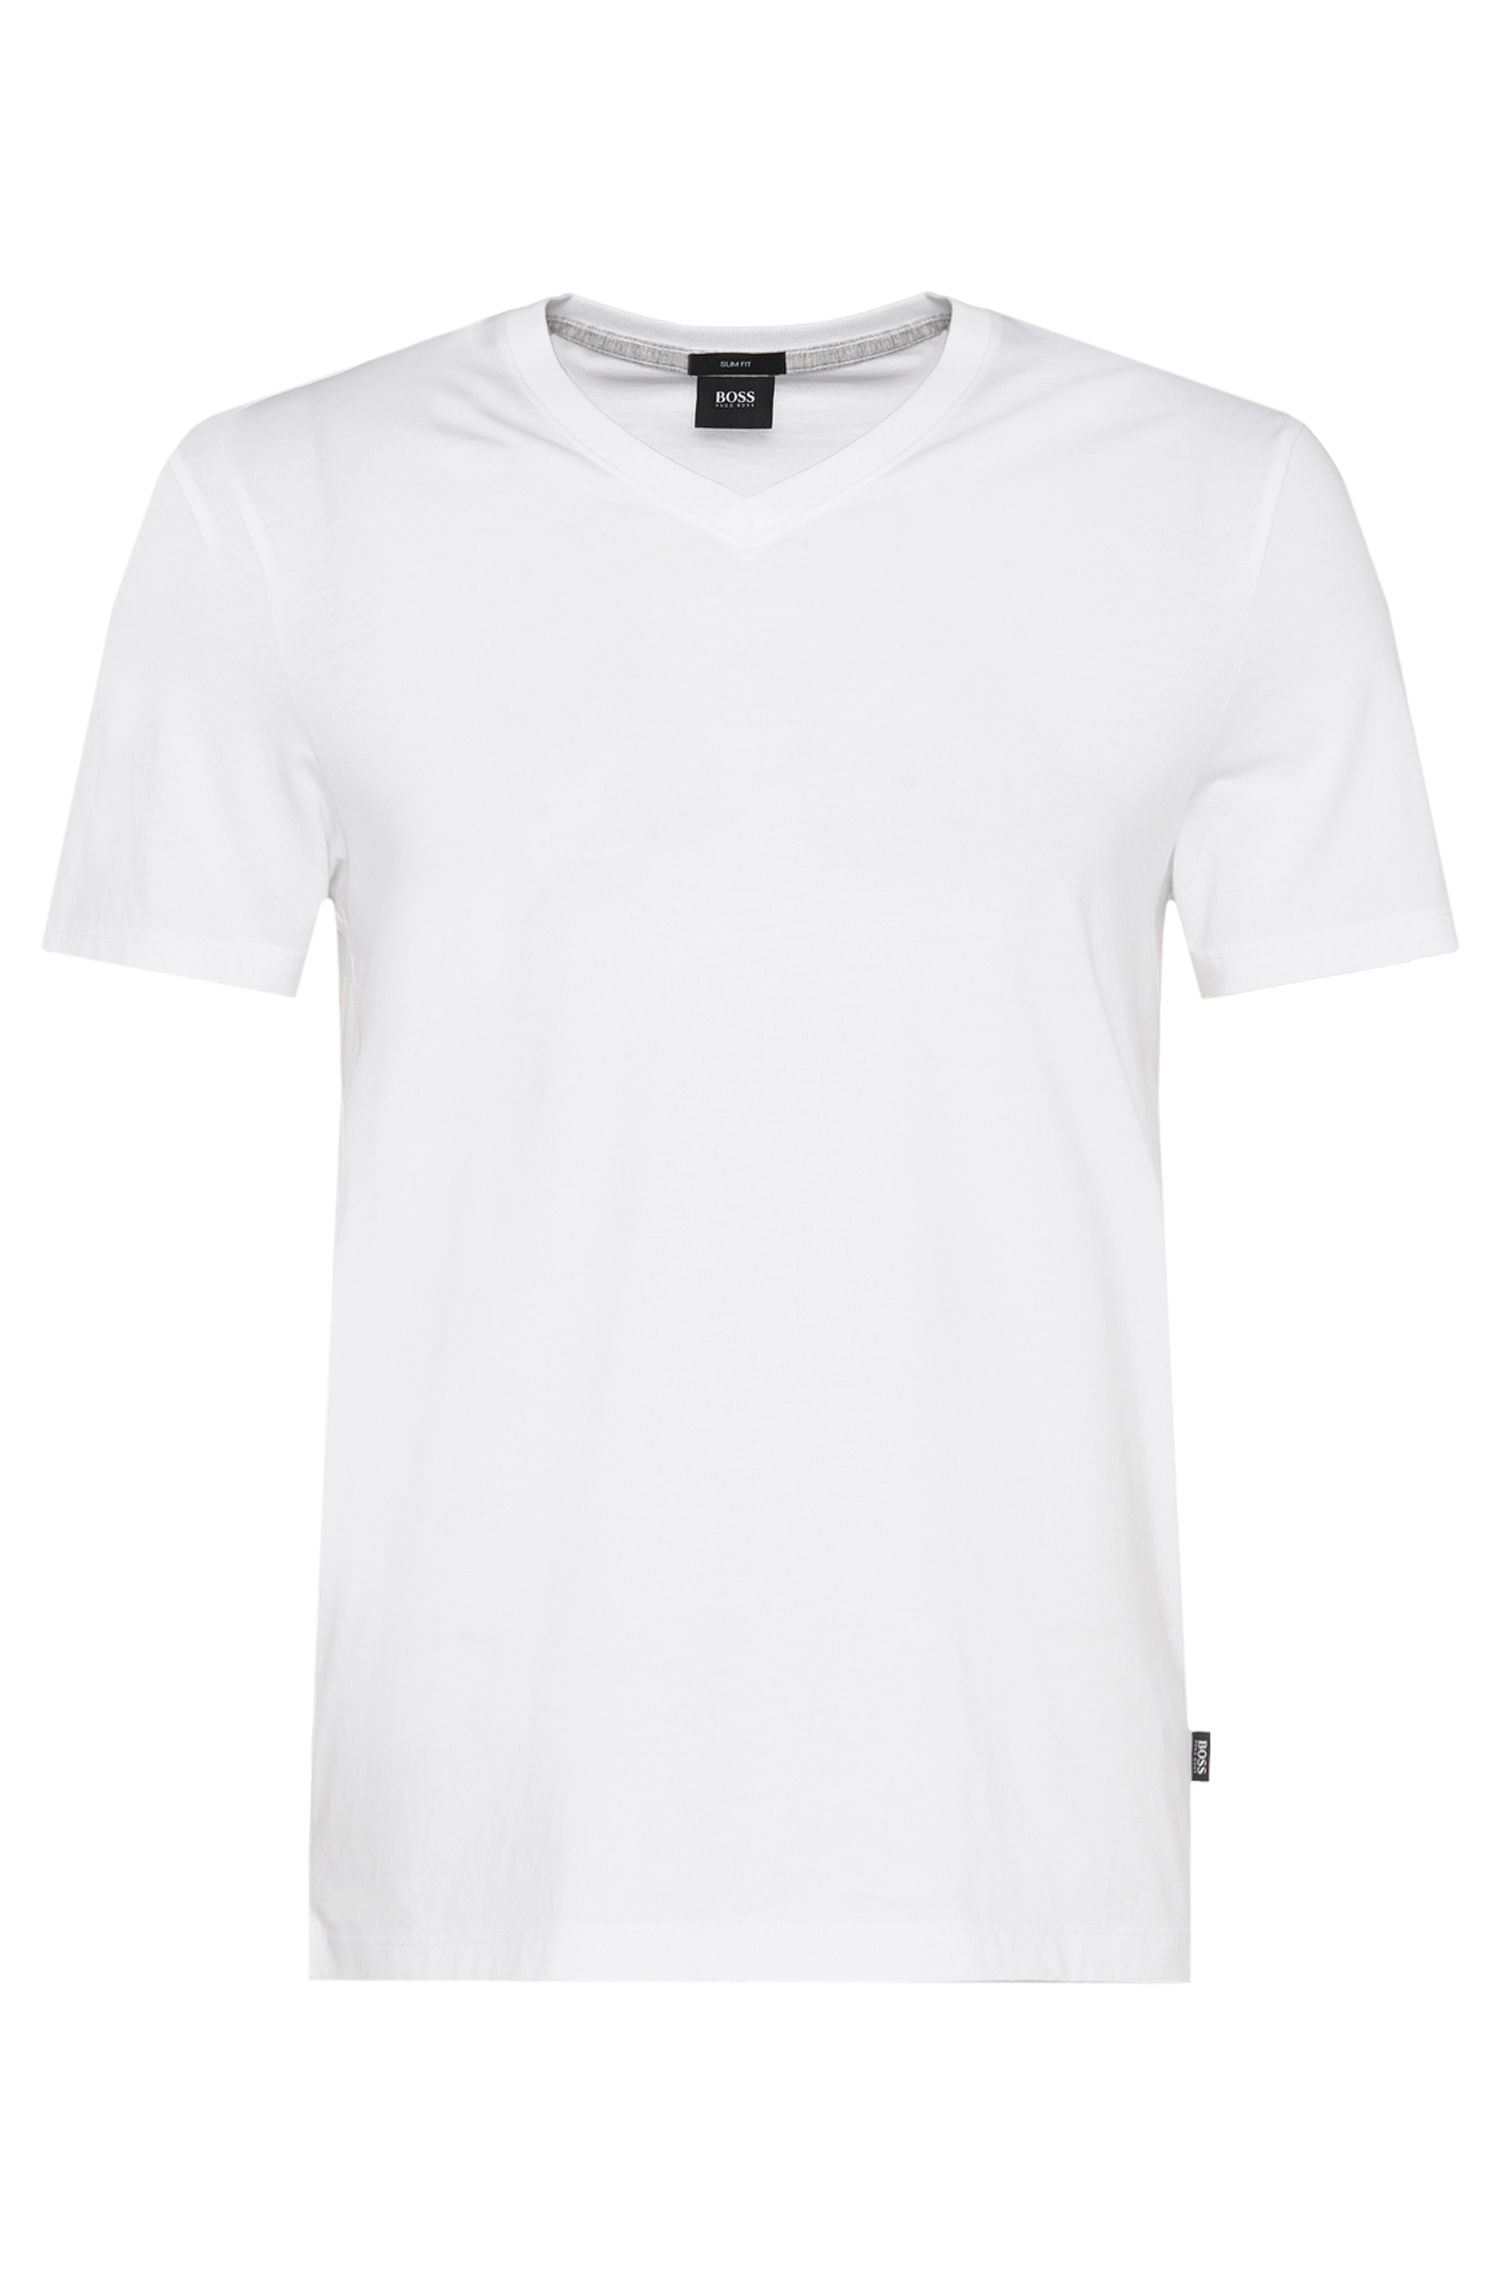 Camiseta slim fit en algodón: 'Teal 01'